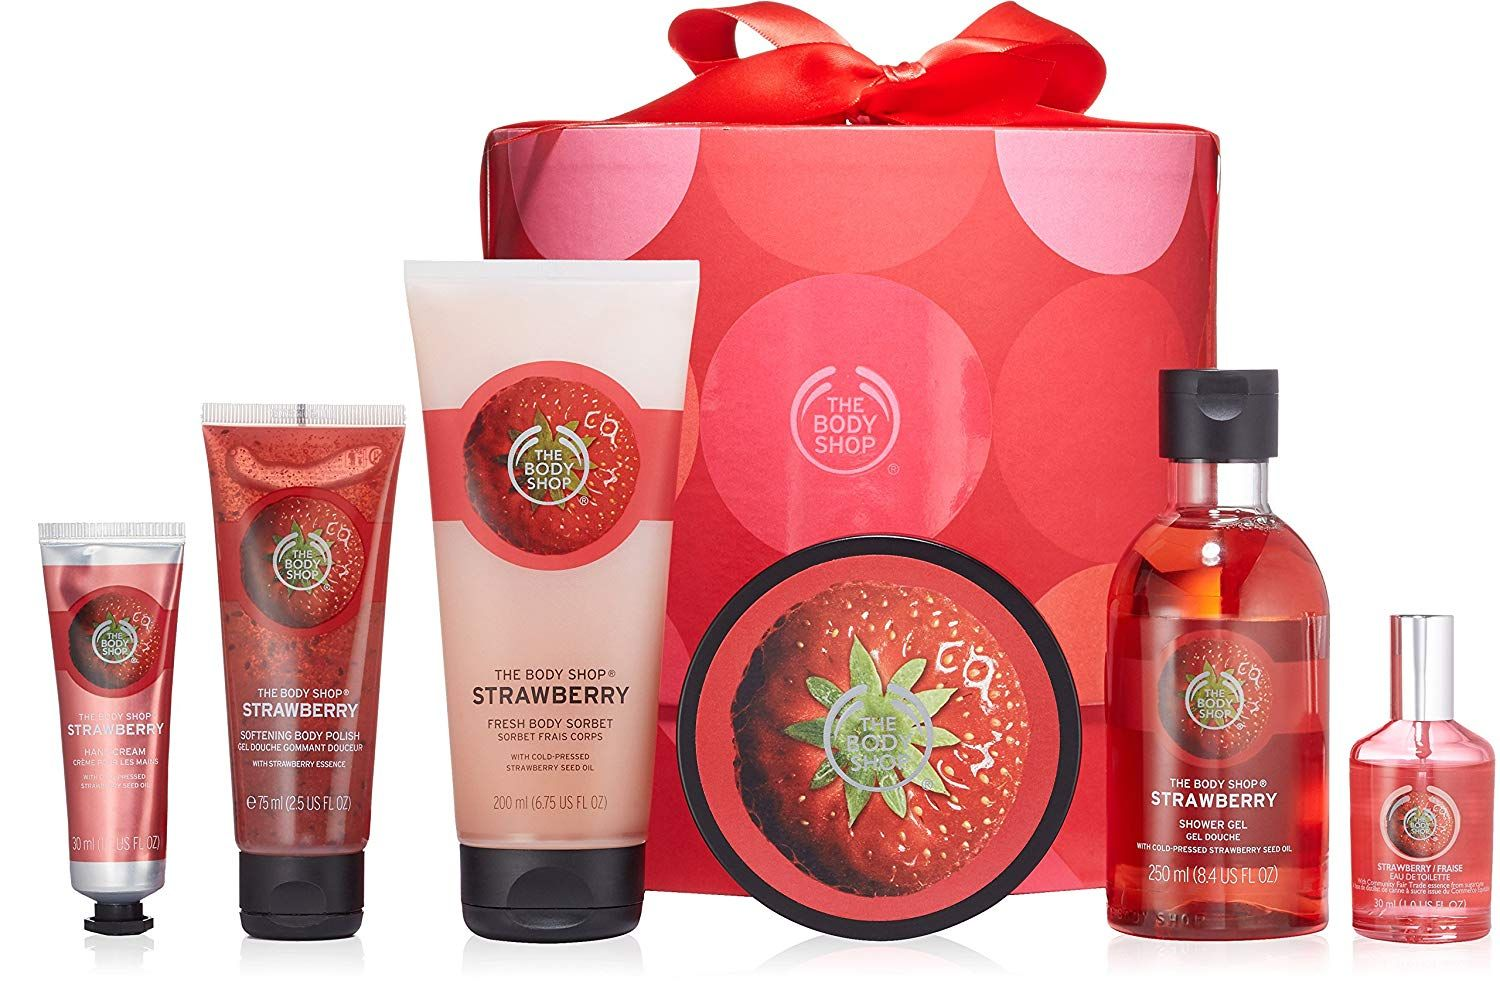 The Body Shop Strawberry Deluxe Gift Set for just 40